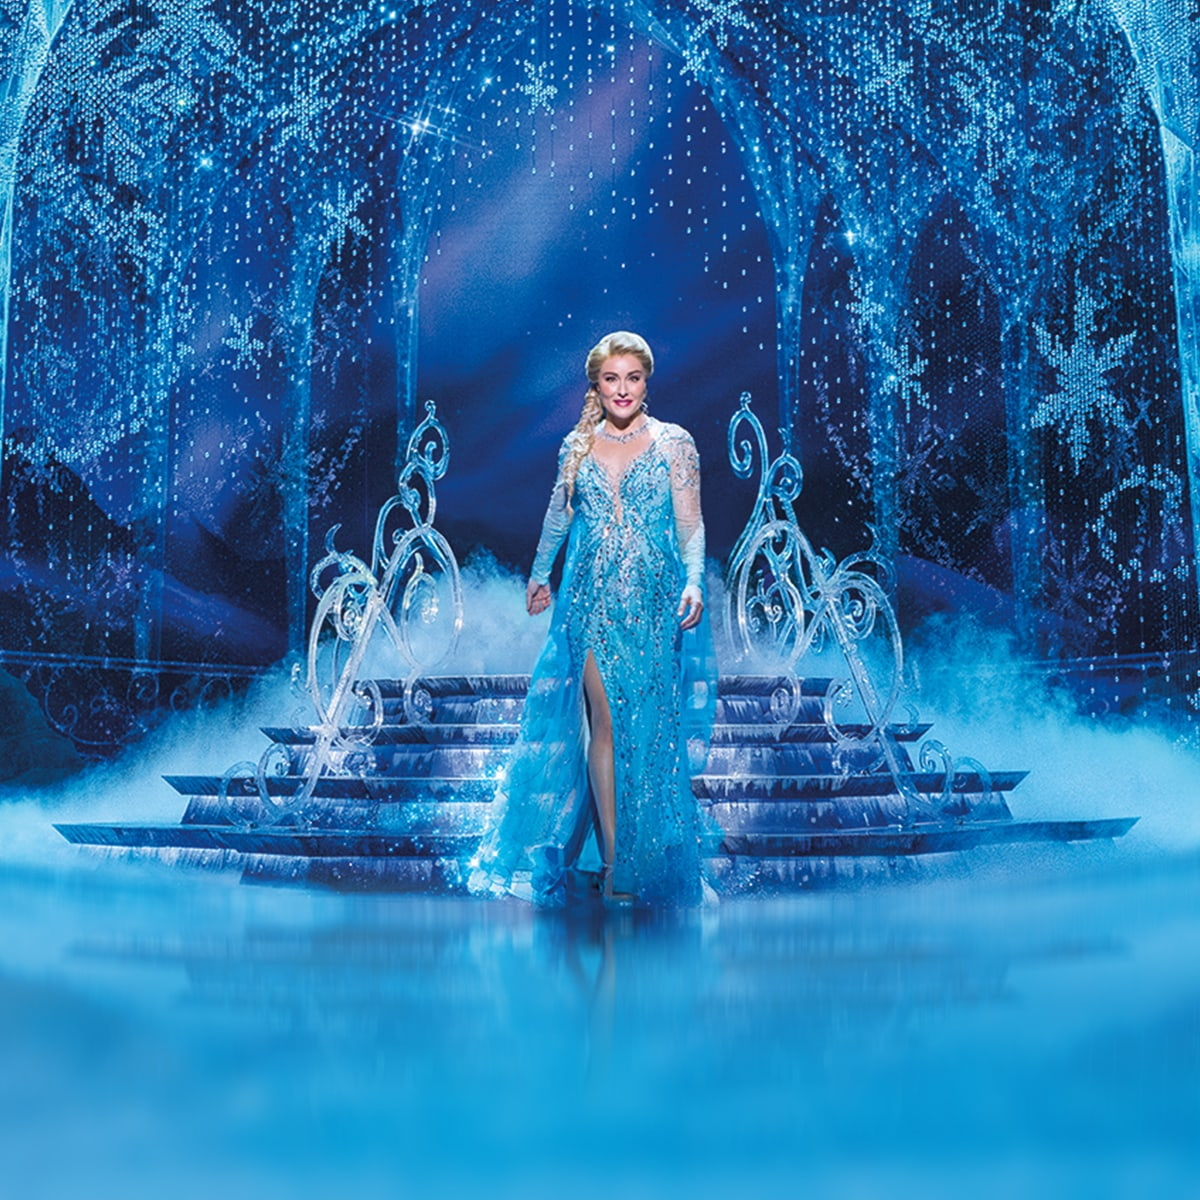 Jemma Rix as Elsa in Frozen The Musical | Tickets on sale now